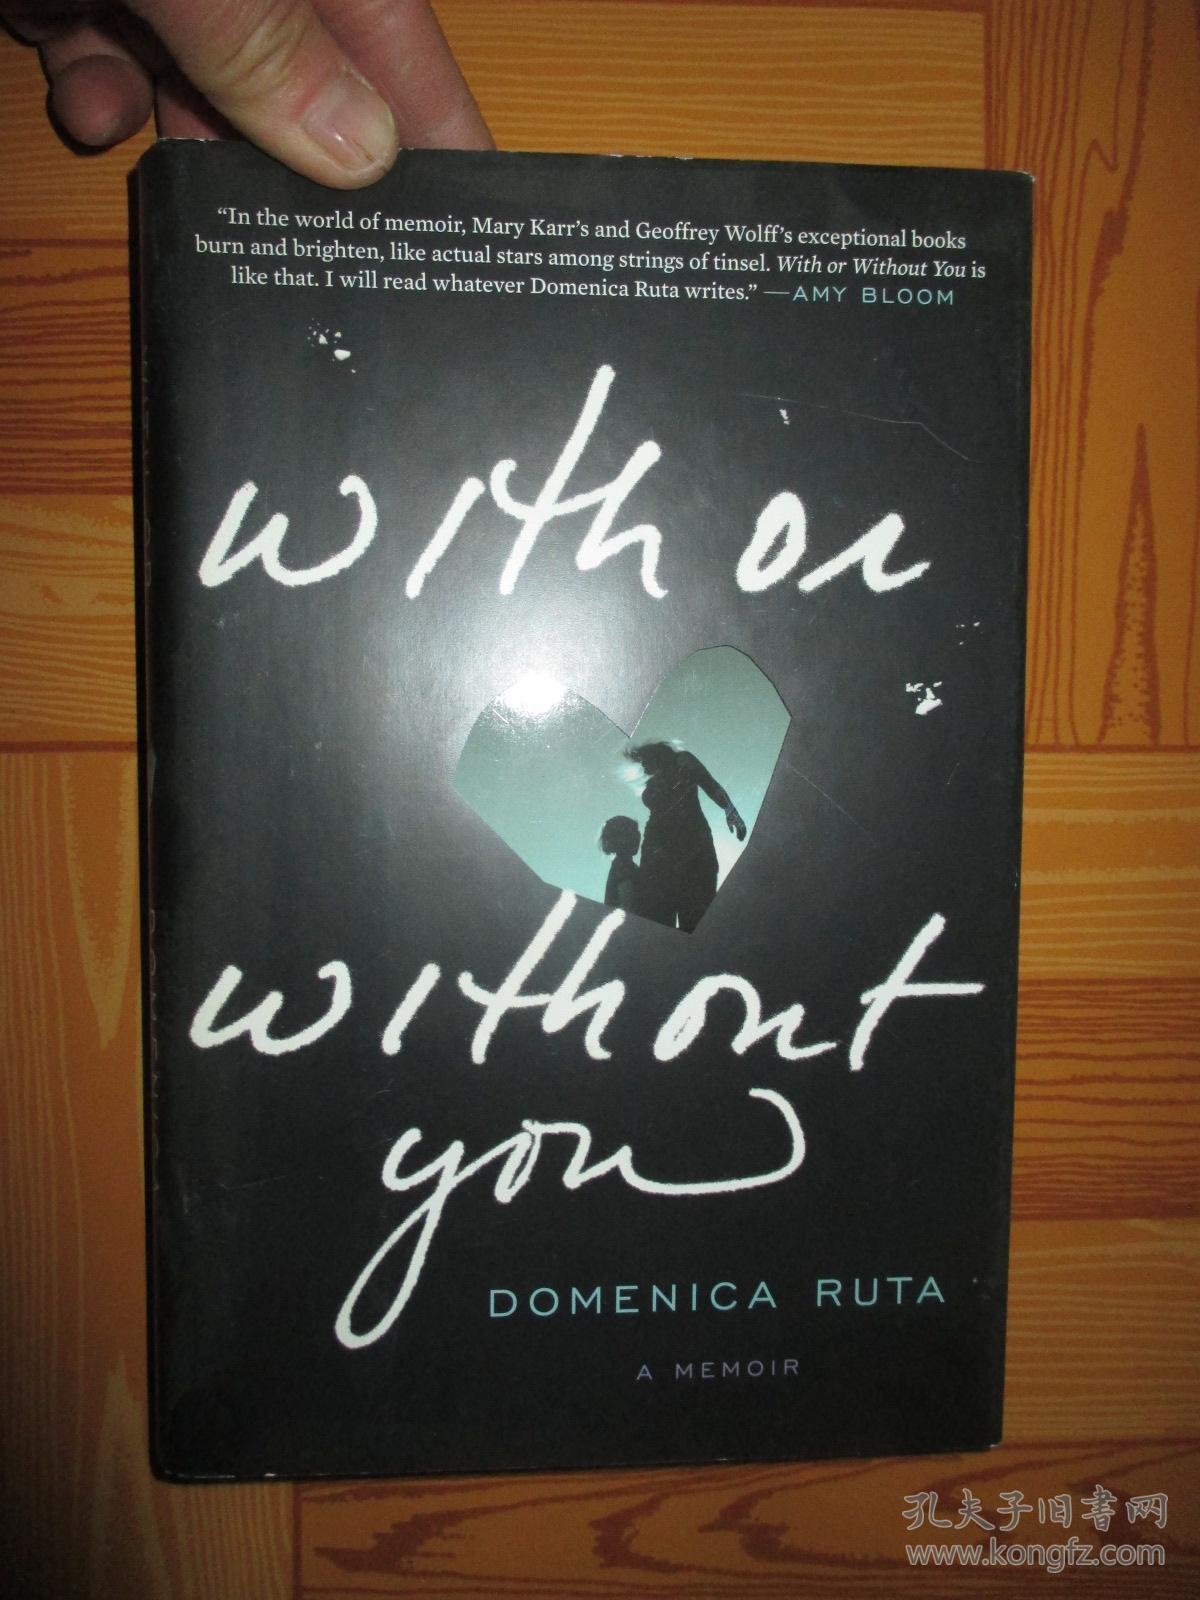 With or Without You: A Memoir      【详见图】